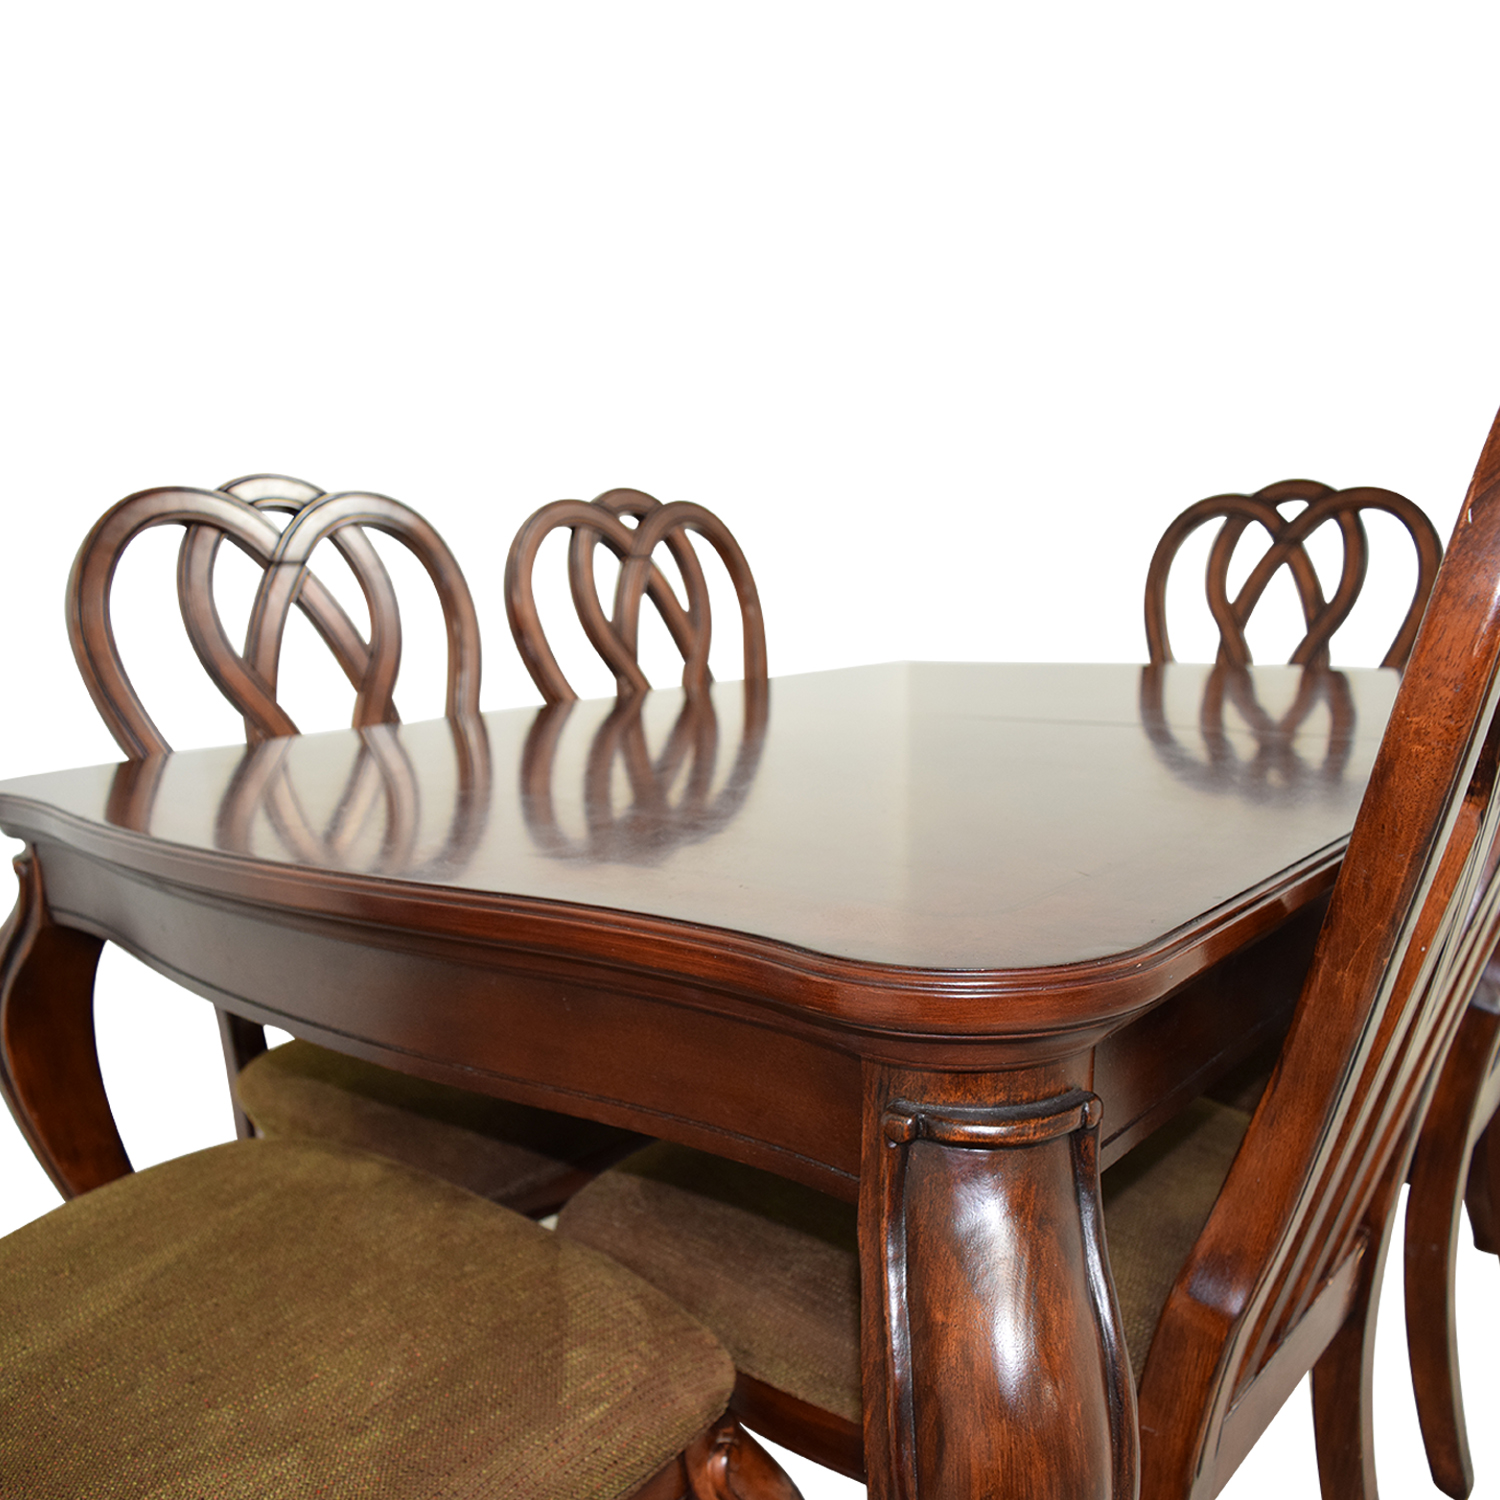 66 off wood dining table with six upholstered chairs tables. Black Bedroom Furniture Sets. Home Design Ideas